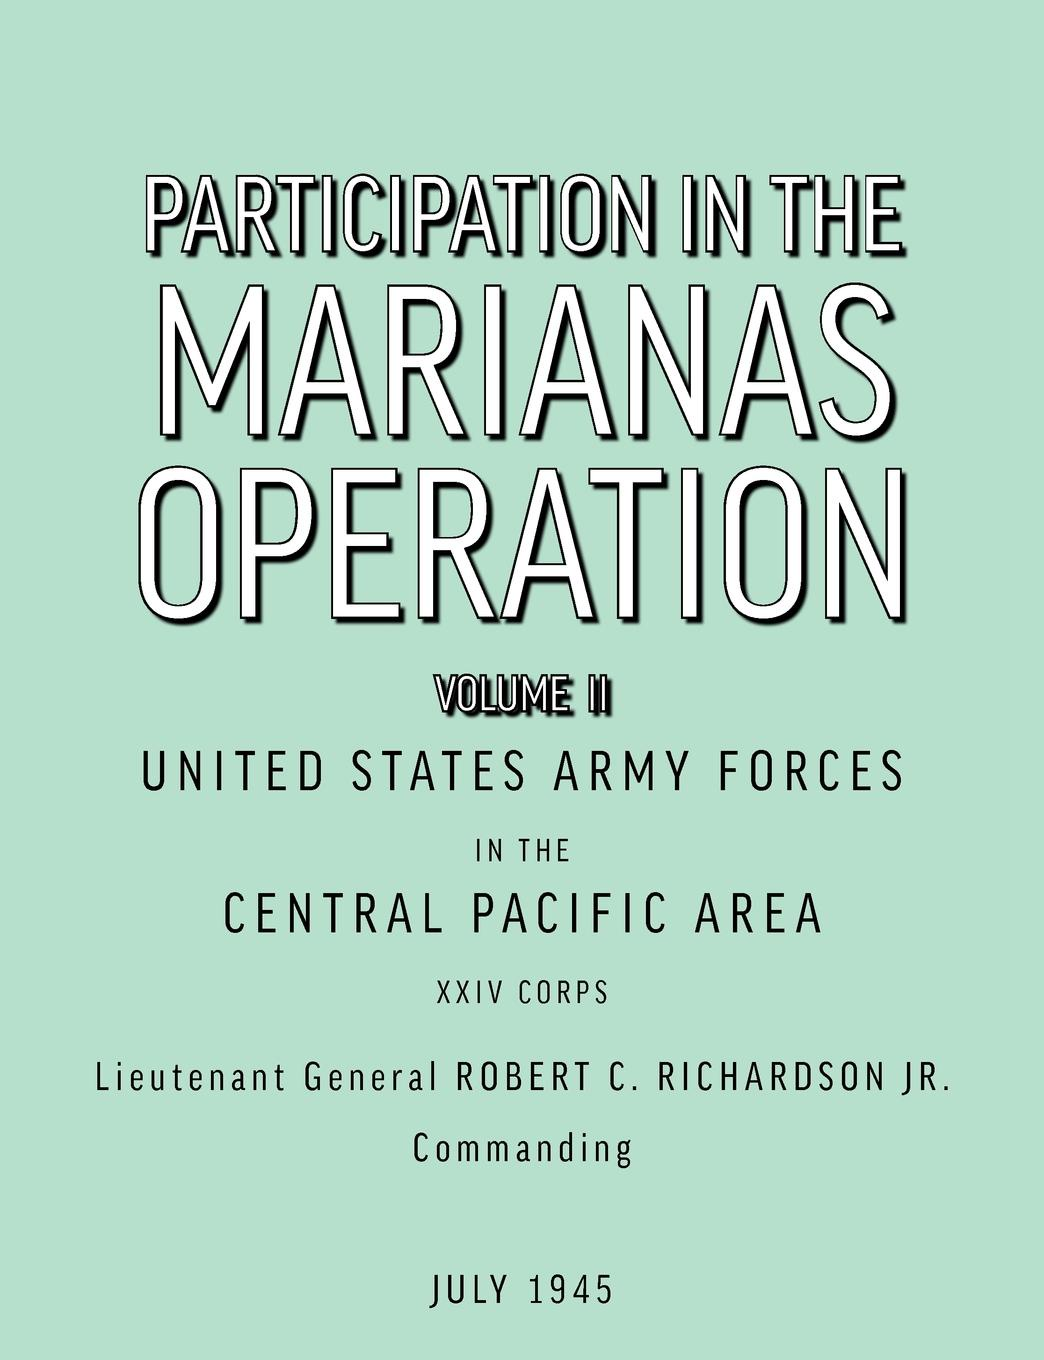 U.S. ArmyForcesin theCentralPaci Participation in the Marianas Operation Volume II ww2 army collectible cap greyish green officer large brim hat woolende 401139